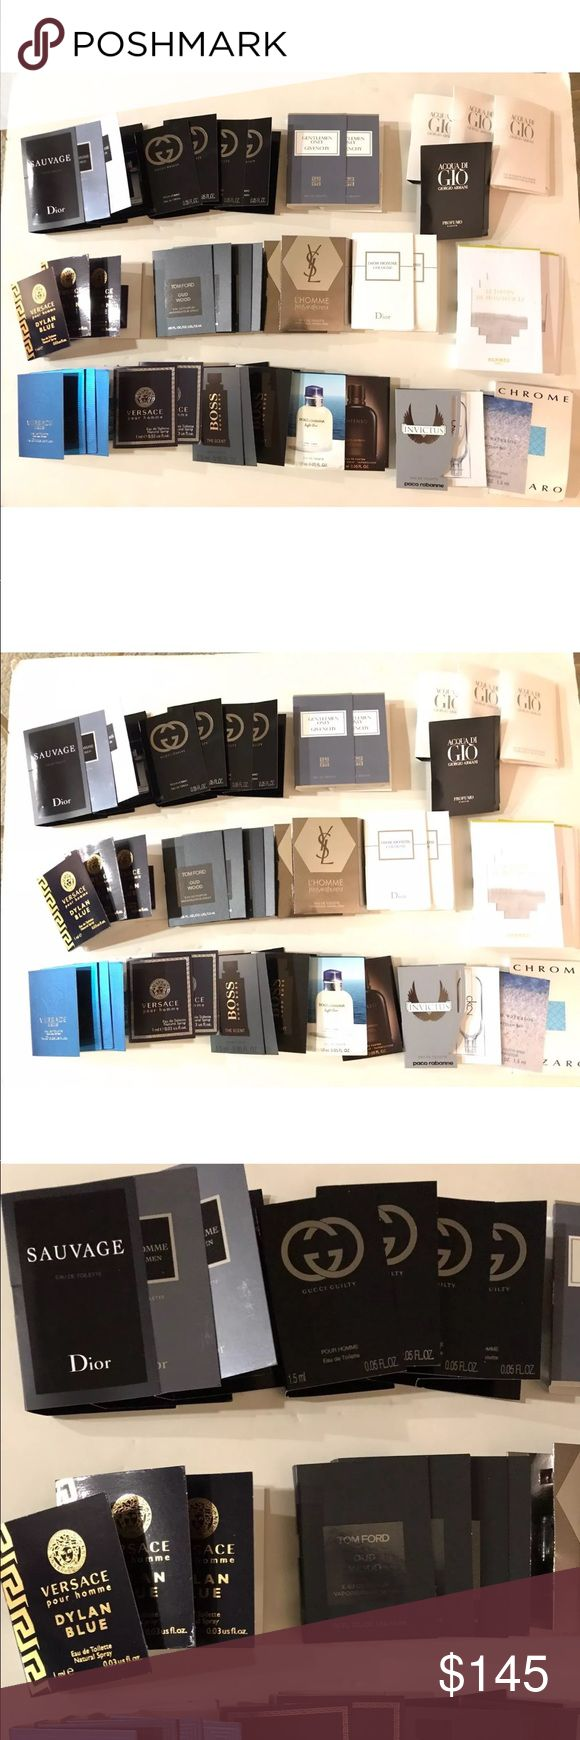 41 Designer Men's Cologne lot Gucci Dior Versace *4 VERSACE EROS 1ML *3 VERSACE DYLAN BLUE 1ML *2 VERSACE POUR HOMME 1 ML *2 DIOR HOMME 1ML *2 DIOR HOMME 1ML *1 DIOR SAVAGE 1ML *4 GUCCI GUILTY 1.5ML *2 GIVENCHY GENTLEMEN ONLY 1ML *4 TOM FORD OUD WOOD 1.5 ML *2 YSL HOMME 1.2 ML *3 ACQUA DI GIO 1.5ML *1 ACQUA DI GIO PROFUMO 1.5ML *2HERMES LE JARDIN DE MONSIEUR LI 2ML *3 HUGO BOSS THE SCENT 1 ML *DOLCE & GABBANA LIGHT BLUE 1.5ML *D&G INTENSO 1.5 ML *PACO RABANNE INVICTUS 1.5ML *CK2…